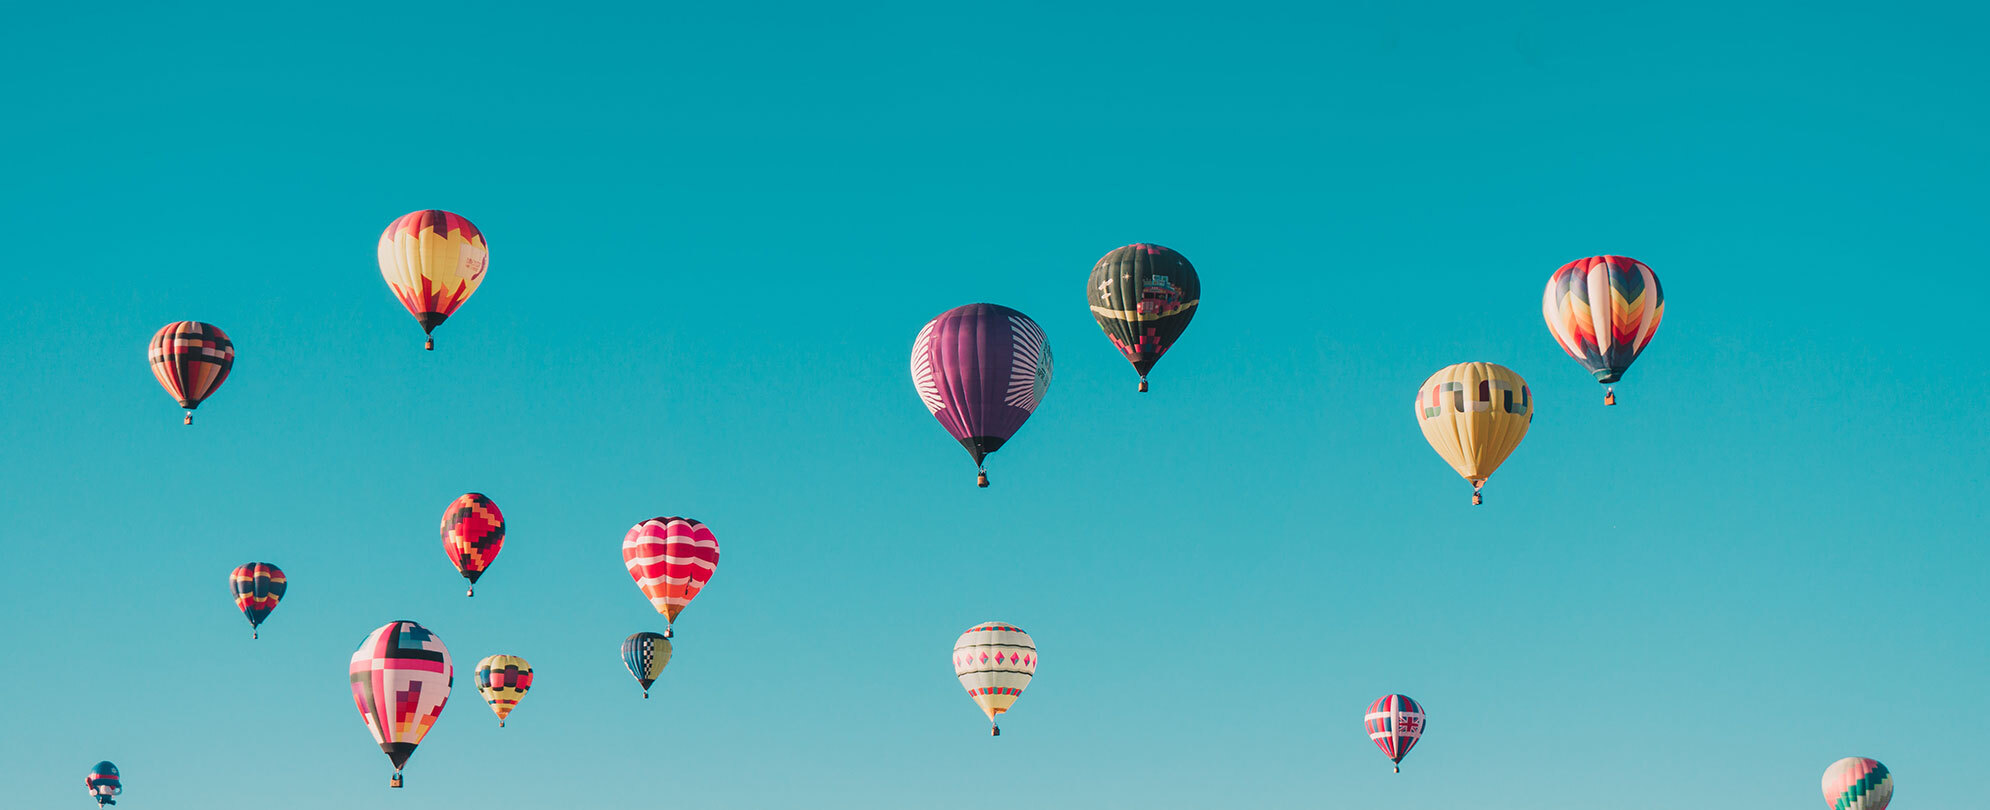 Bright blue sky with different color hot air balloons